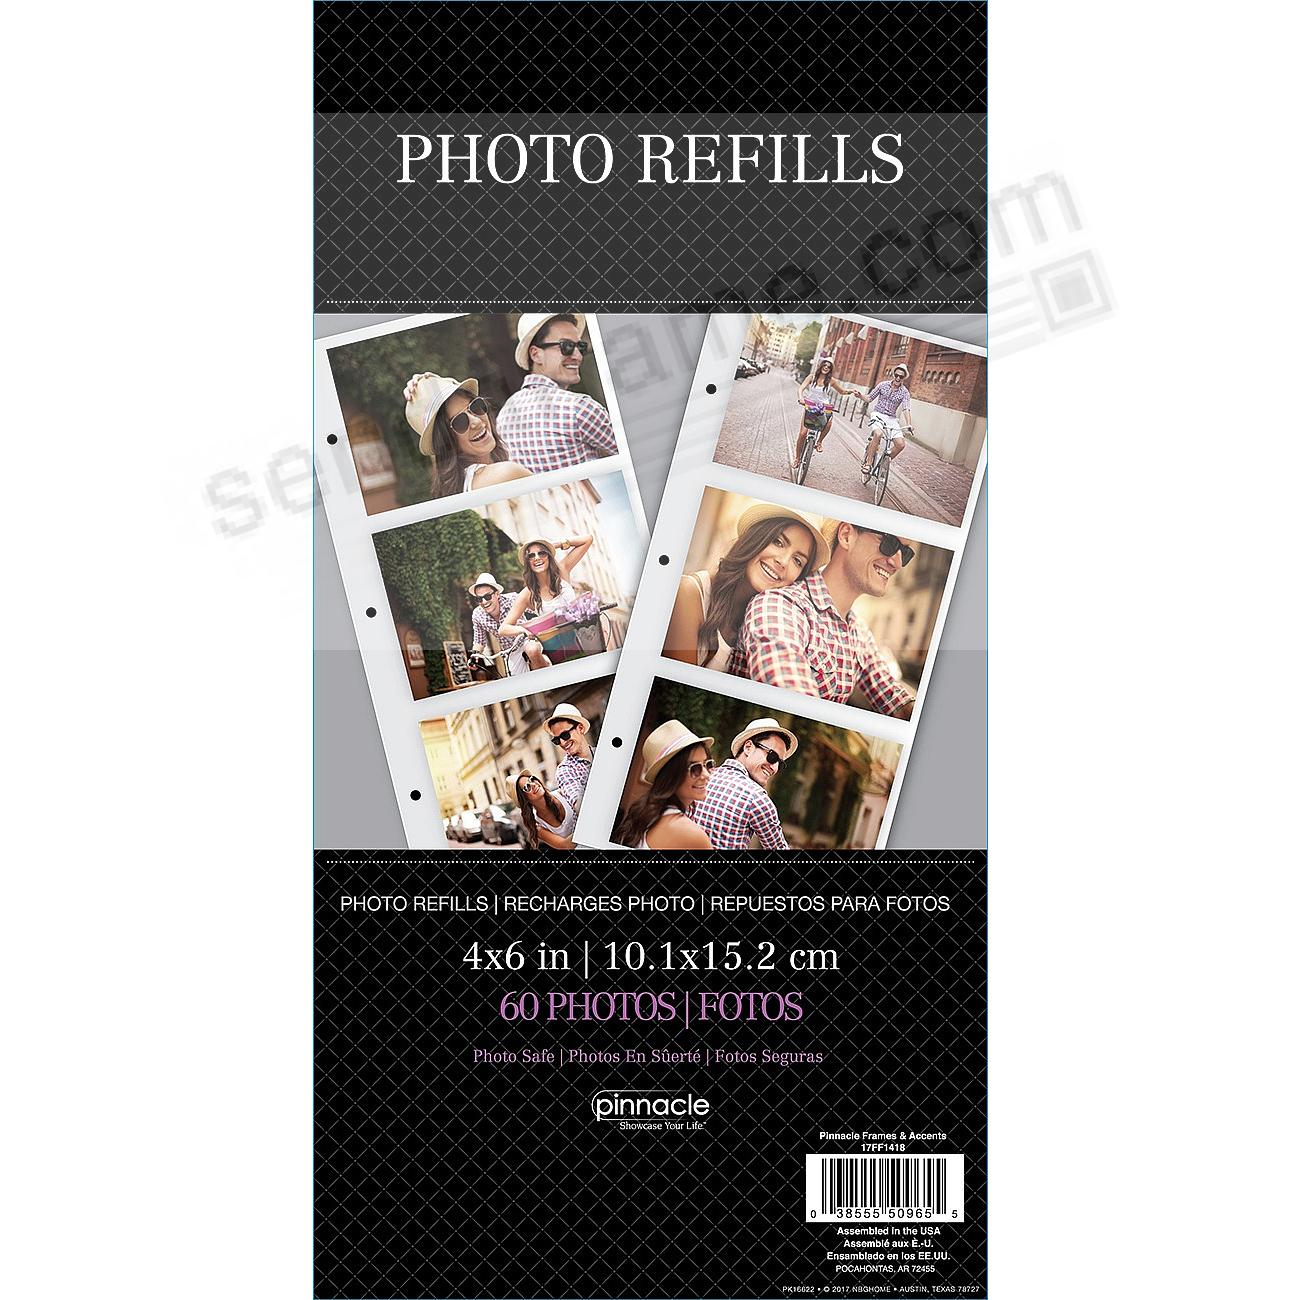 Genuine Pinnacle® 3-up refills for 60-4x6 prints in ring bound albums